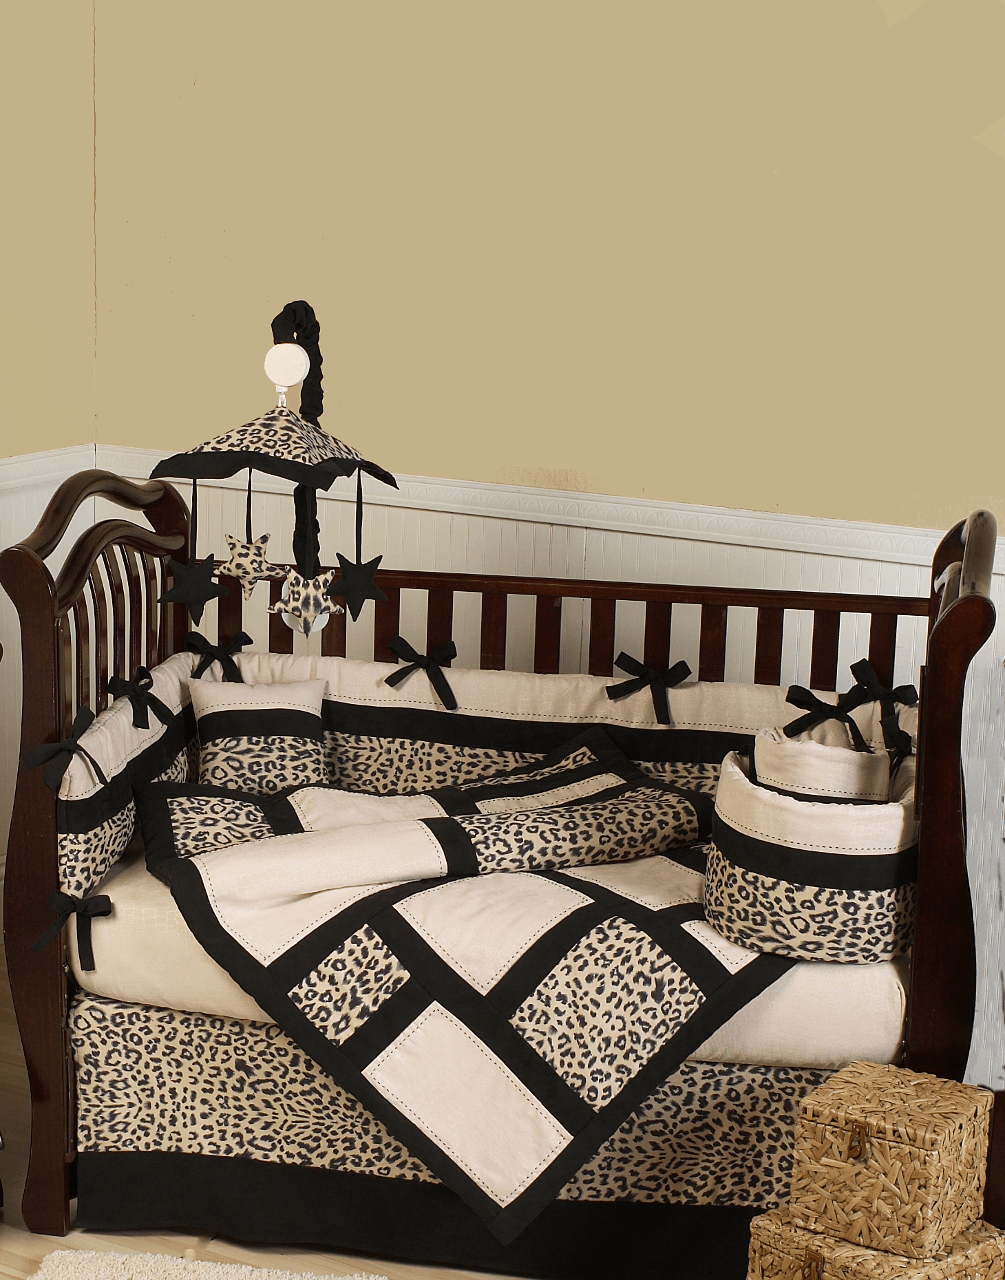 Leopard Baby Bedding 9pc Cheetah Print Crib Bedding And